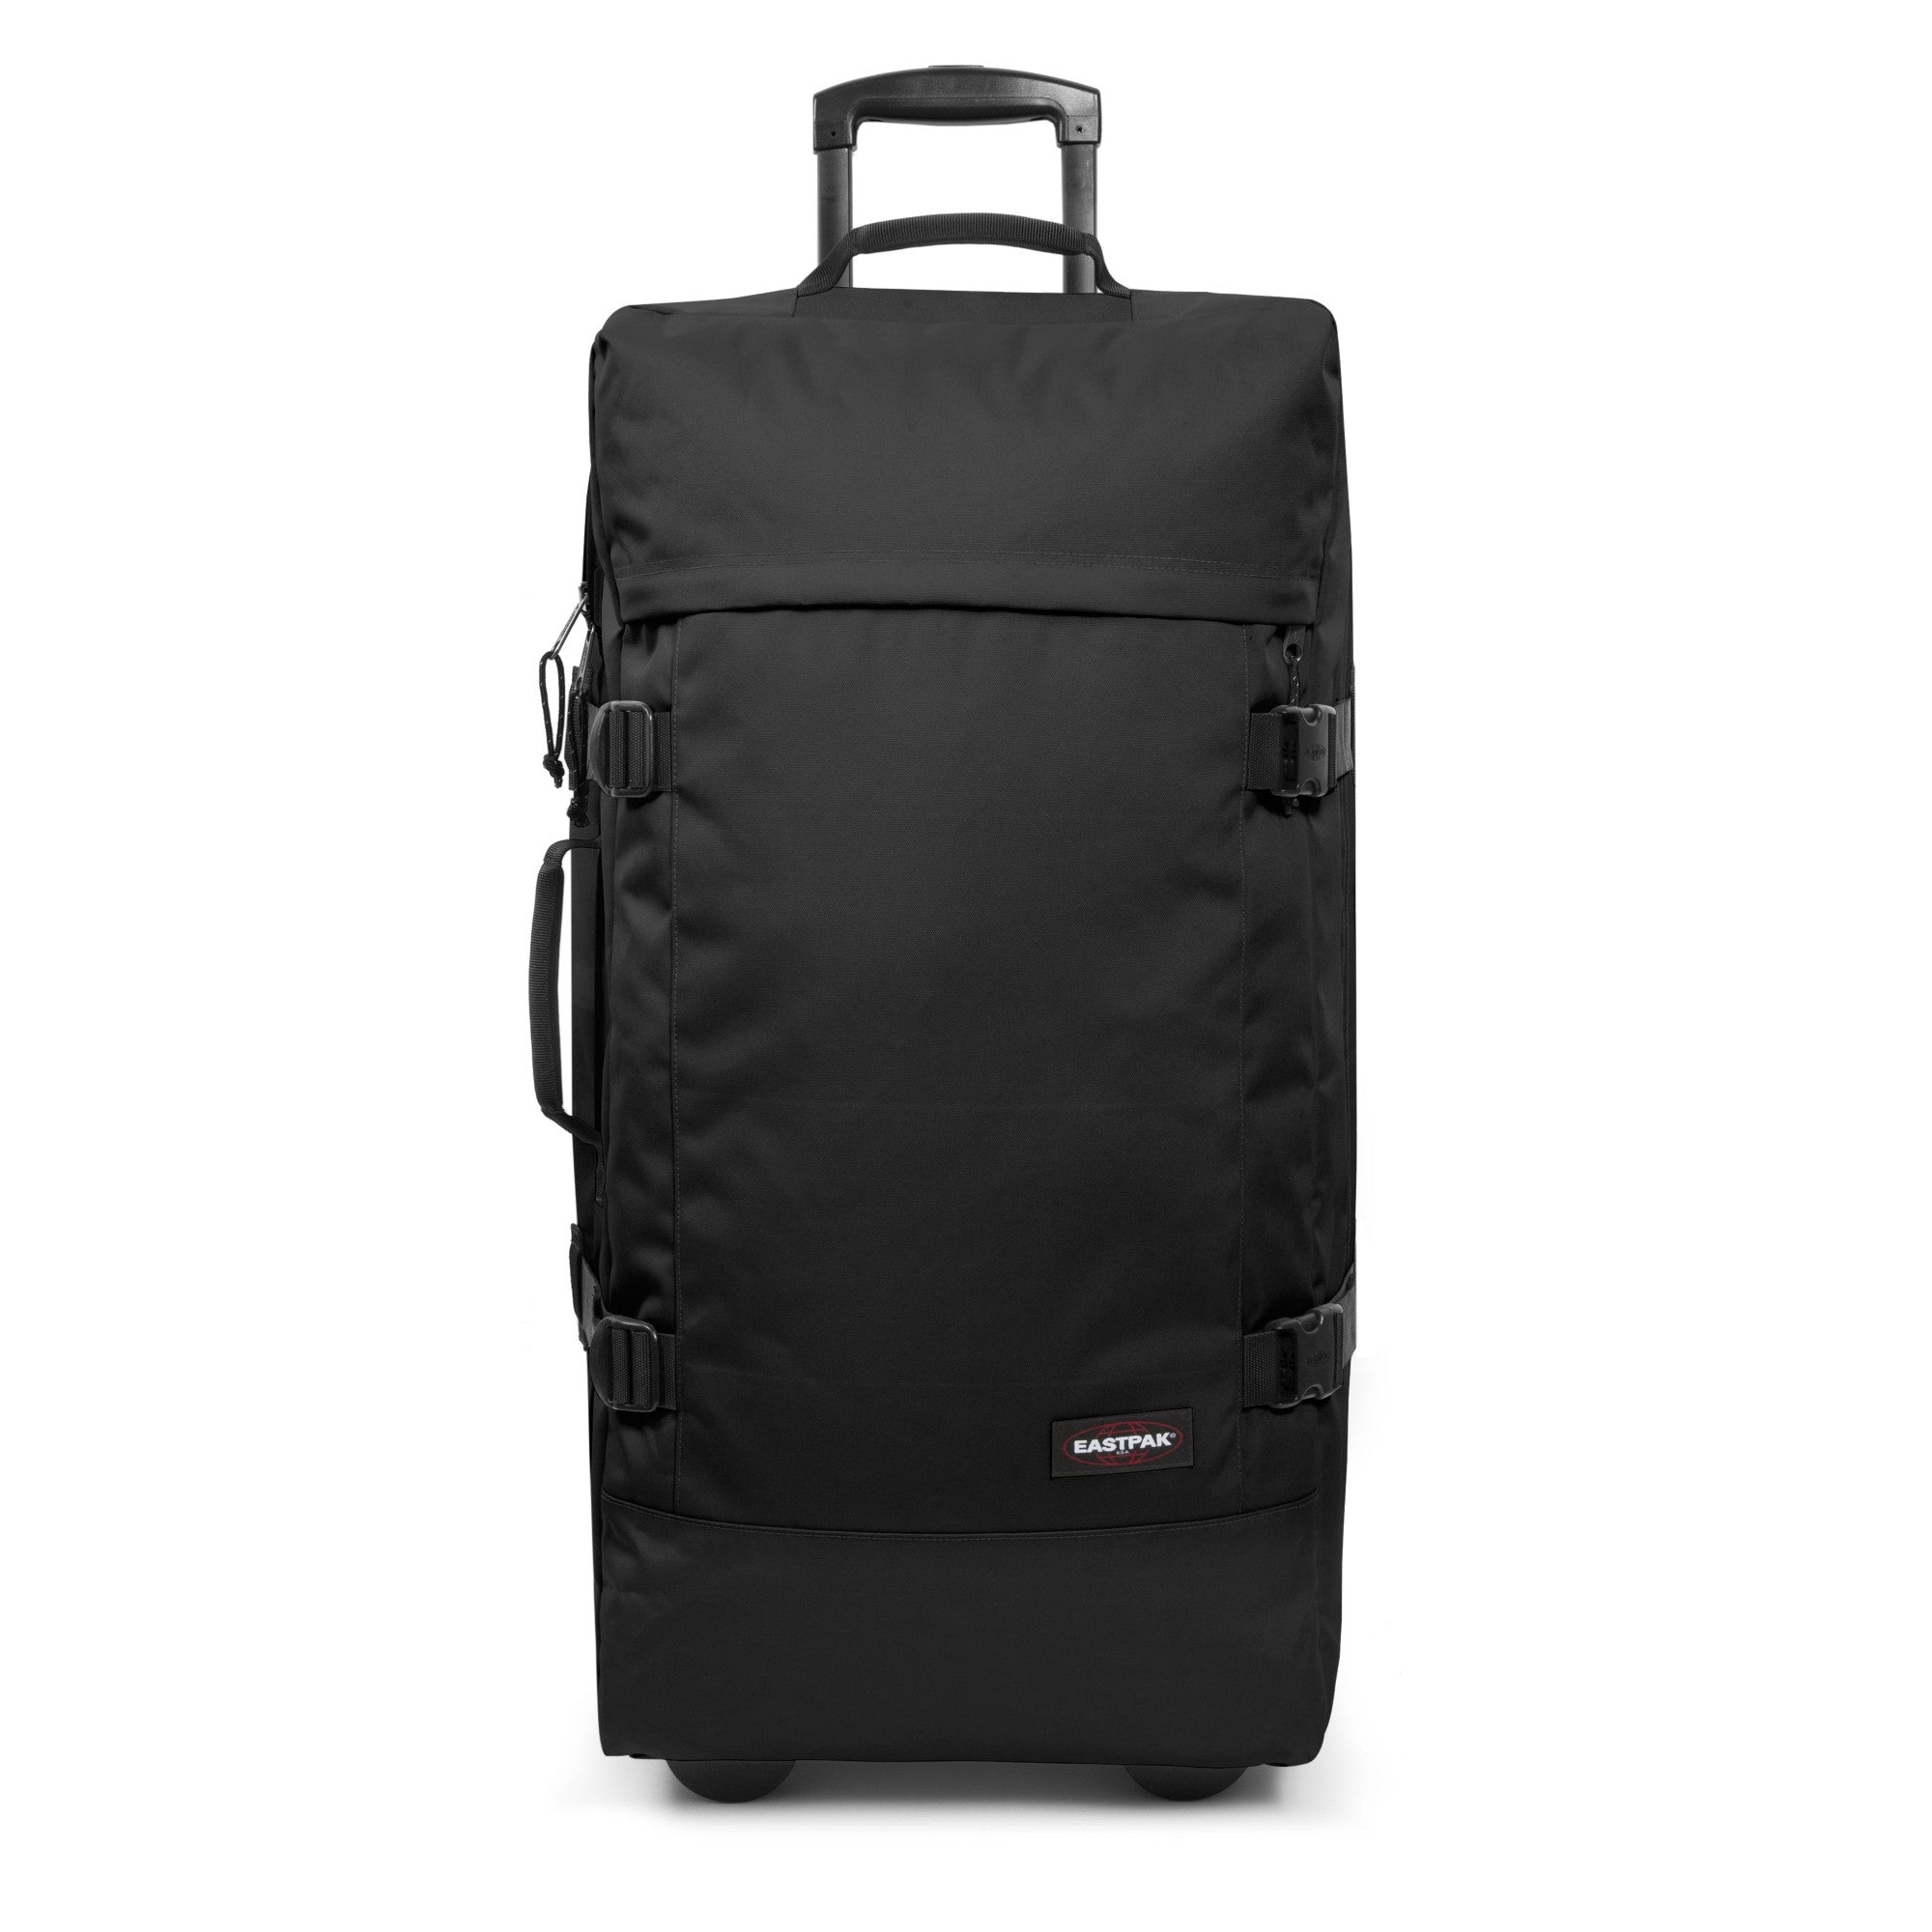 Eastpak Tranverz Large 79cm 2-Wheel Soft-Sided Holdall